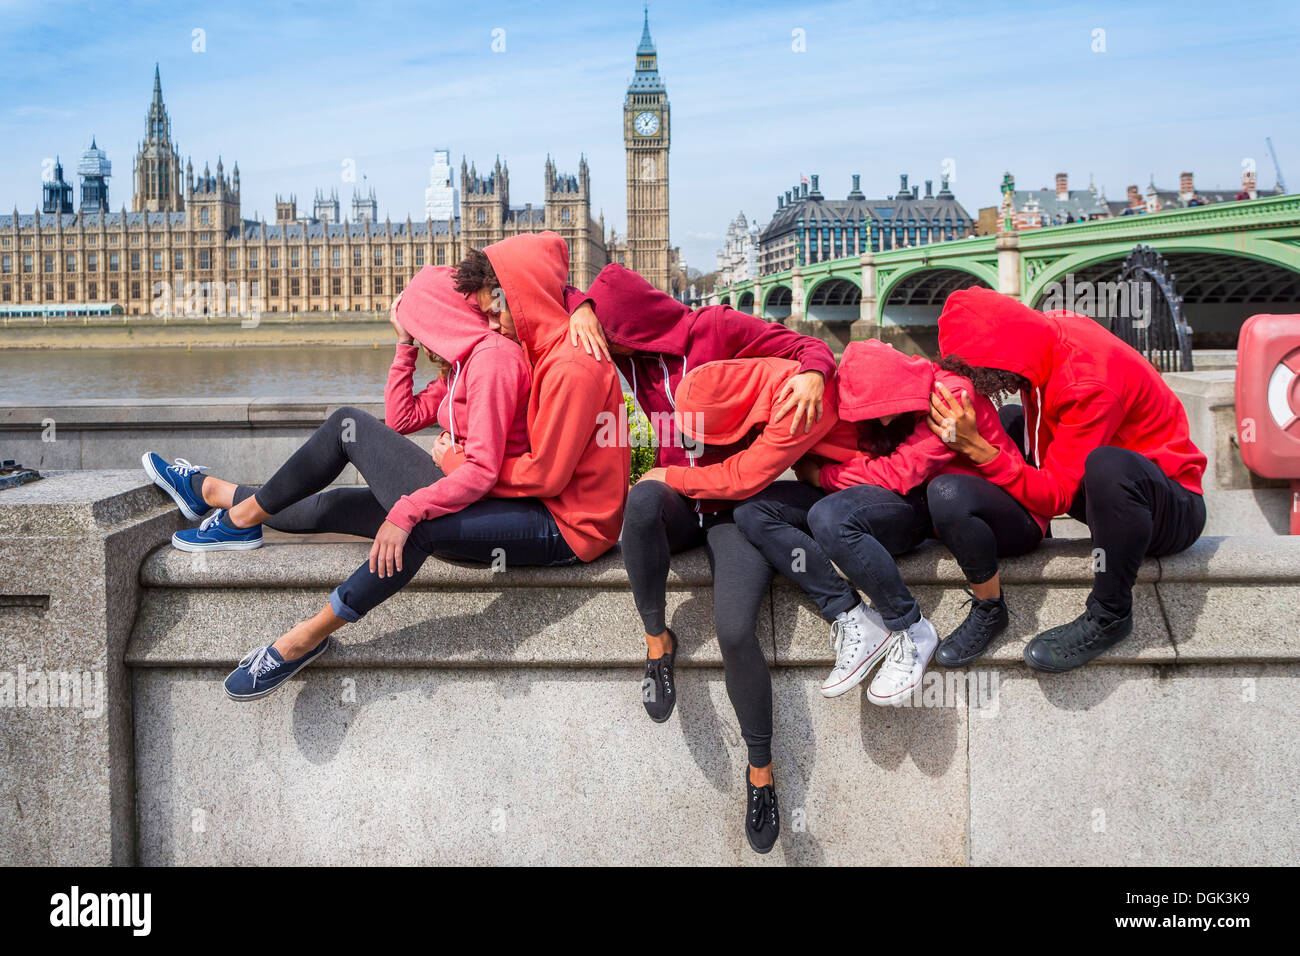 Small group of young people performing on wall - Stock Image